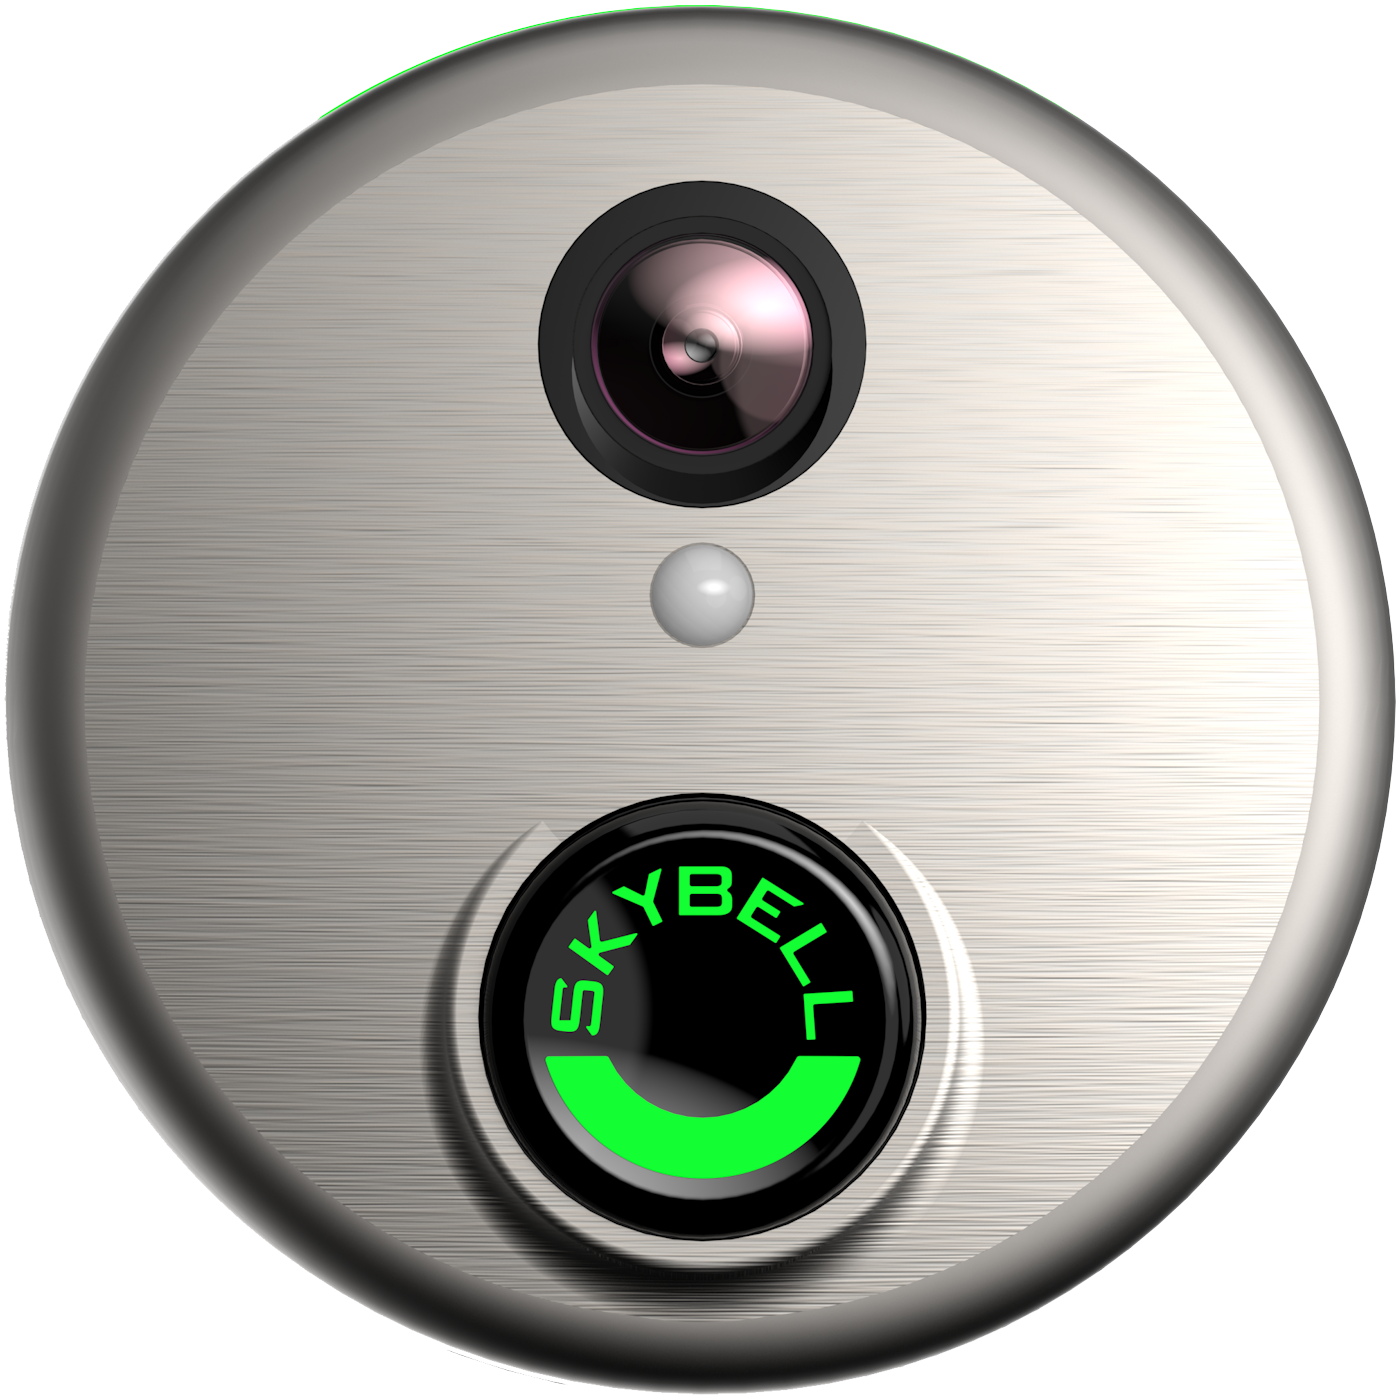 DBCAM - Honeywell Wireless SkyBell Video Doorbell Camera ...